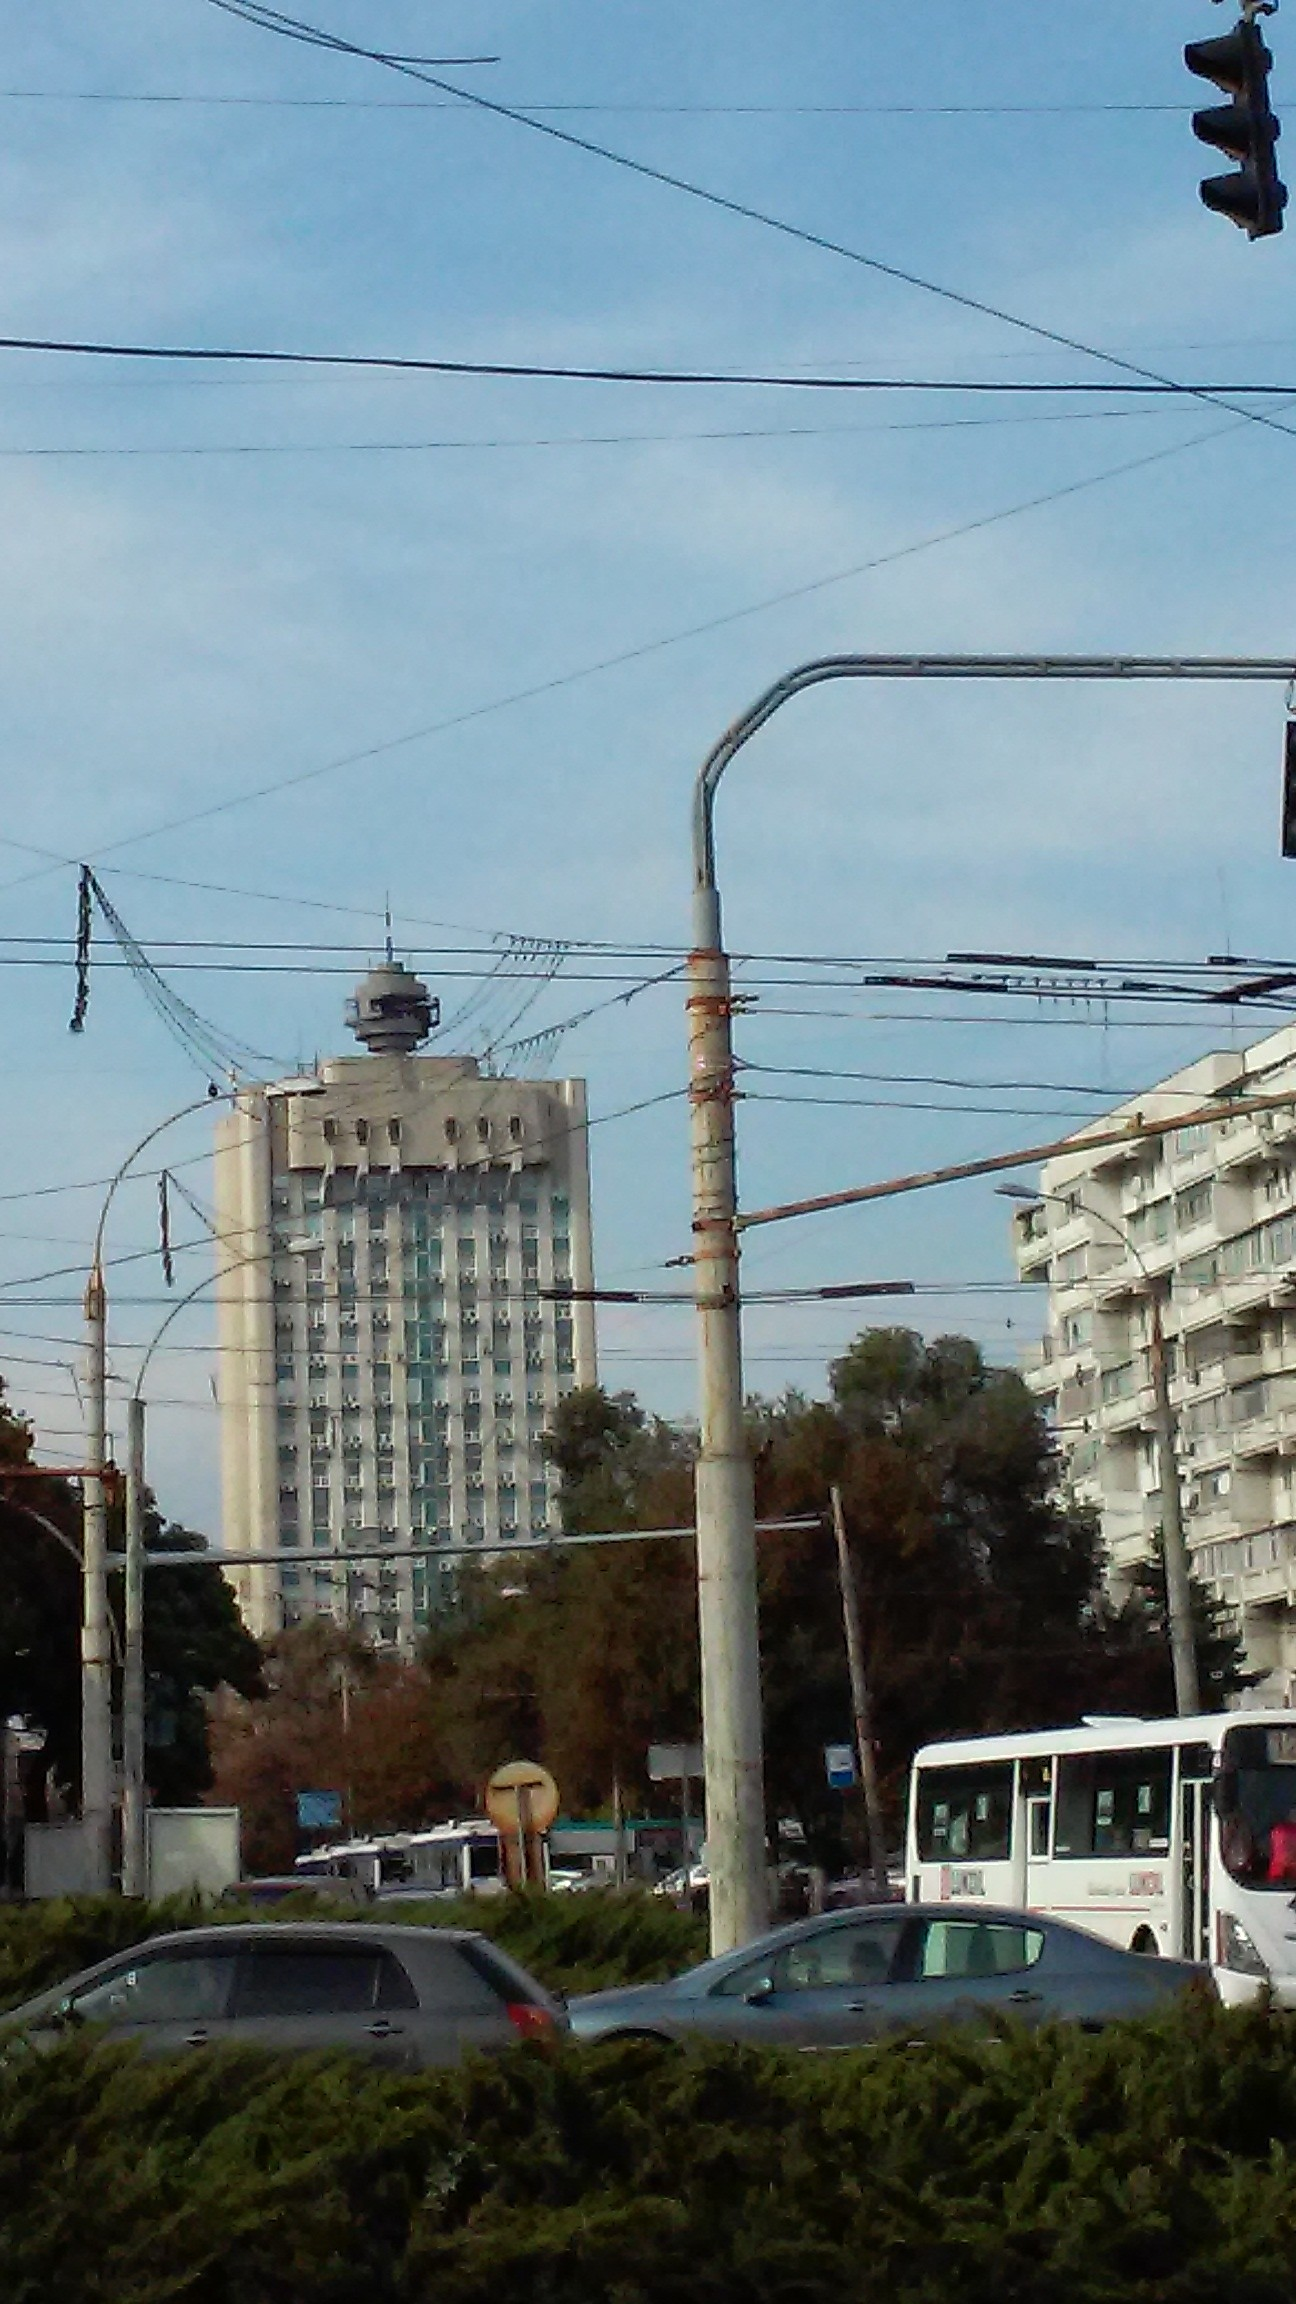 Standard Soviet building styles in Chișinău. - Image courtesy of the author.